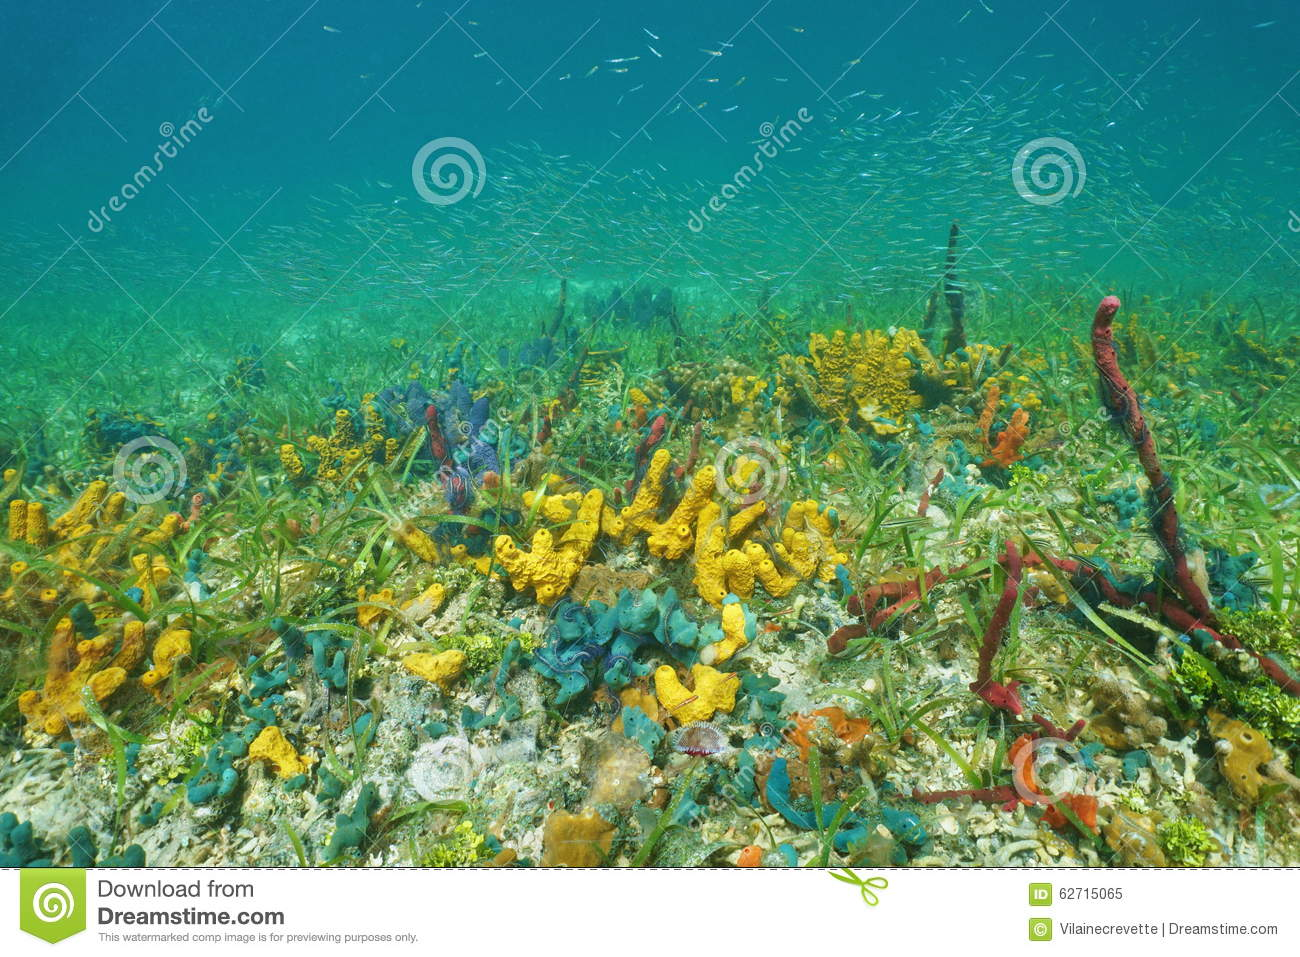 Underwater Scenery With Colorful Marine Life Stock Photo ... |Colorful Underwater Life